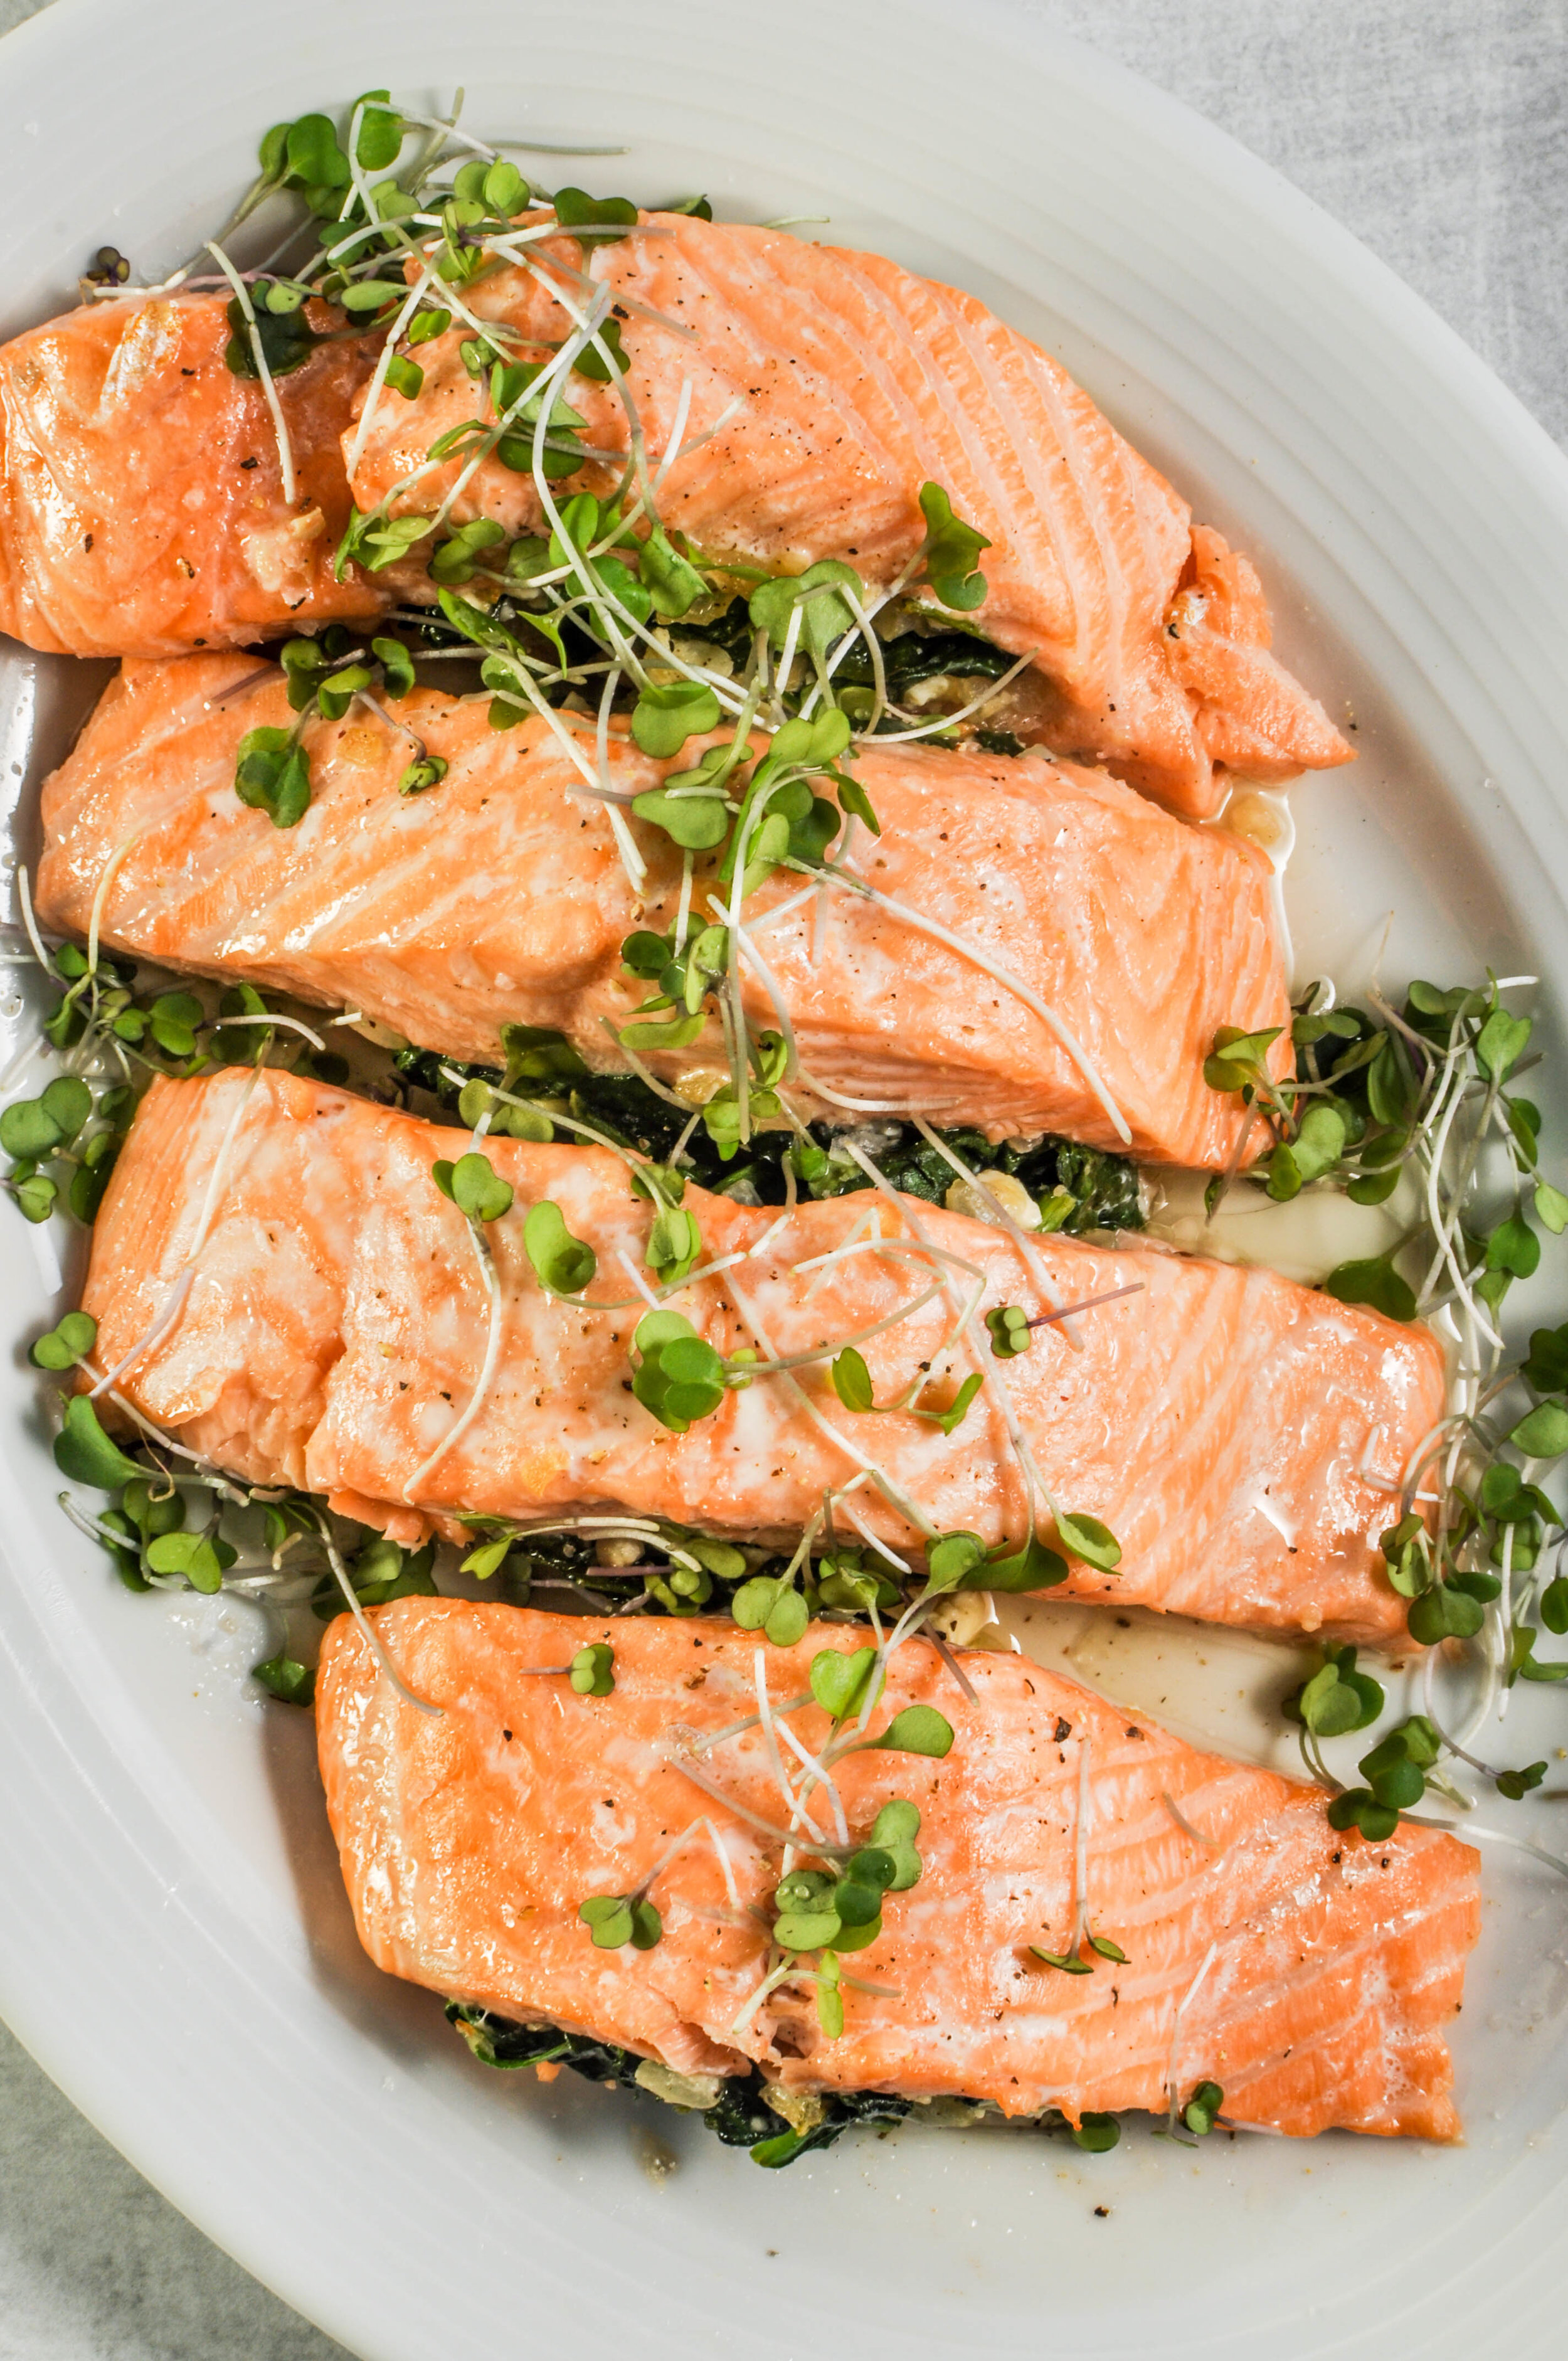 Spinach & Feta Stuffed Salmon | a delicious, healthy weeknight meal that's ready in 20 minutes. #recipes #healthydinner #pescetarian